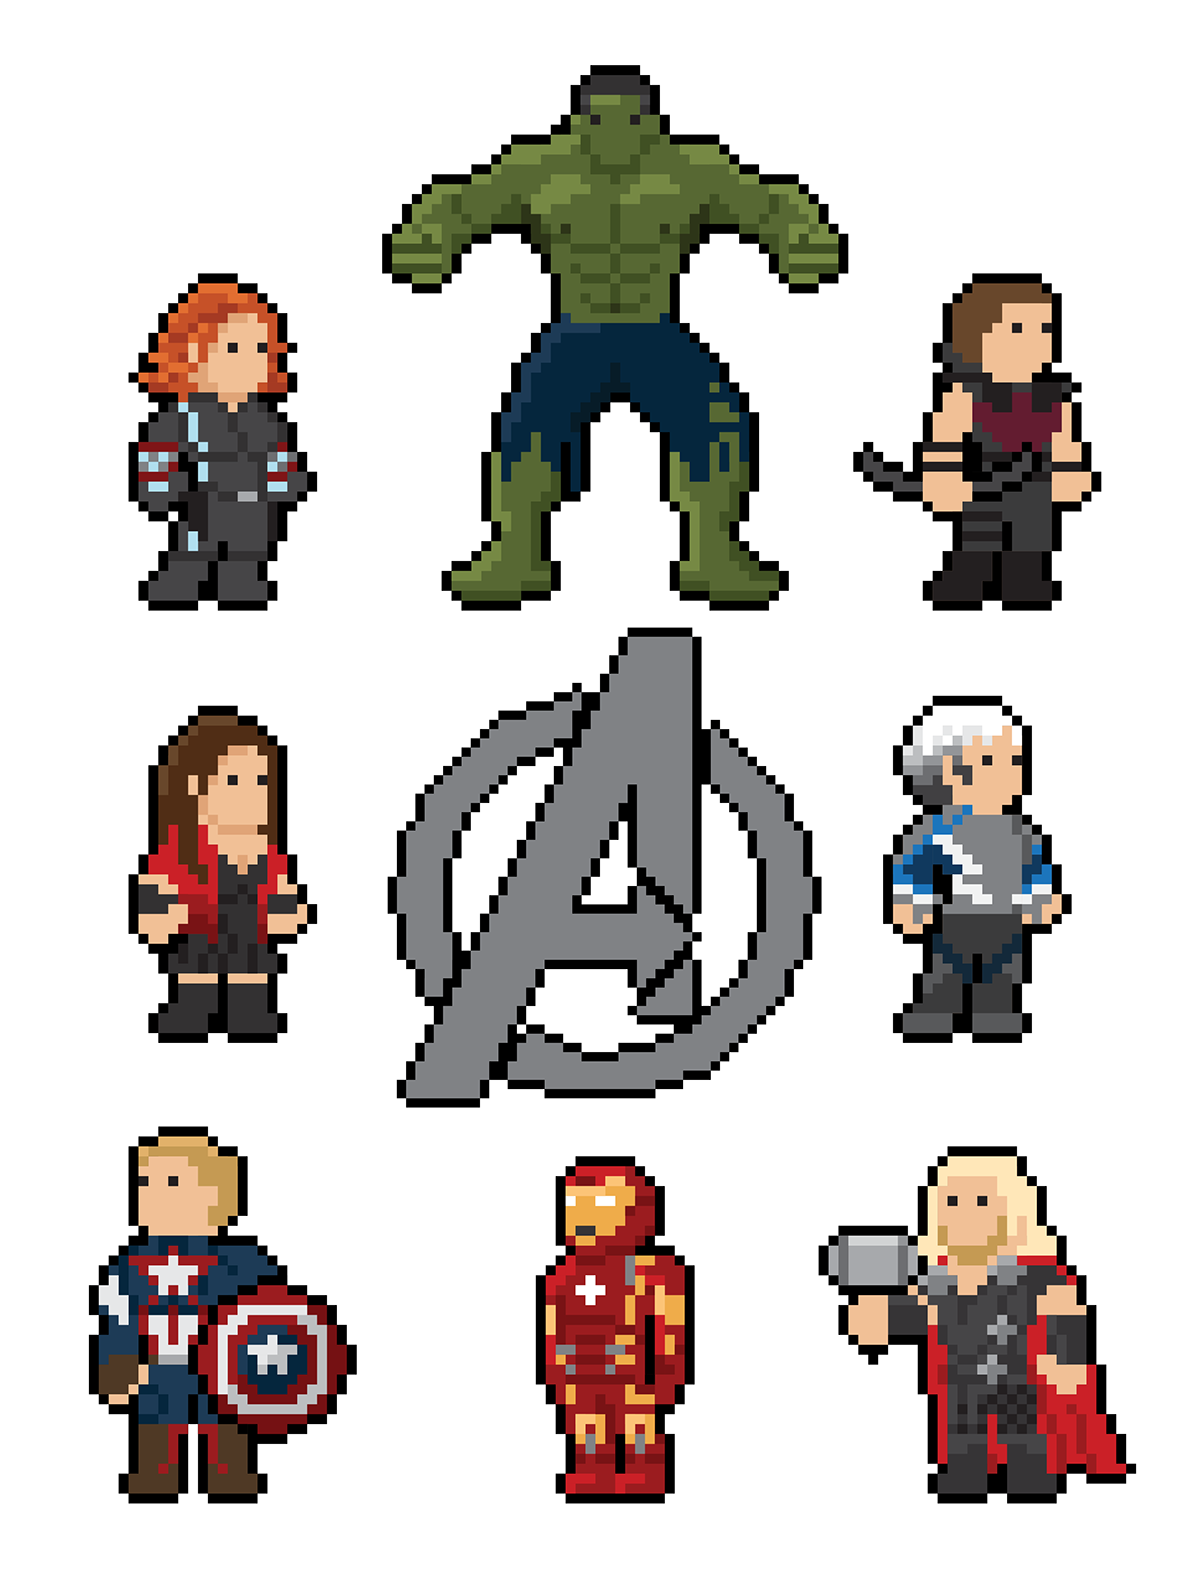 Character Design Jobs Nyc : The avengers pixel art on behance